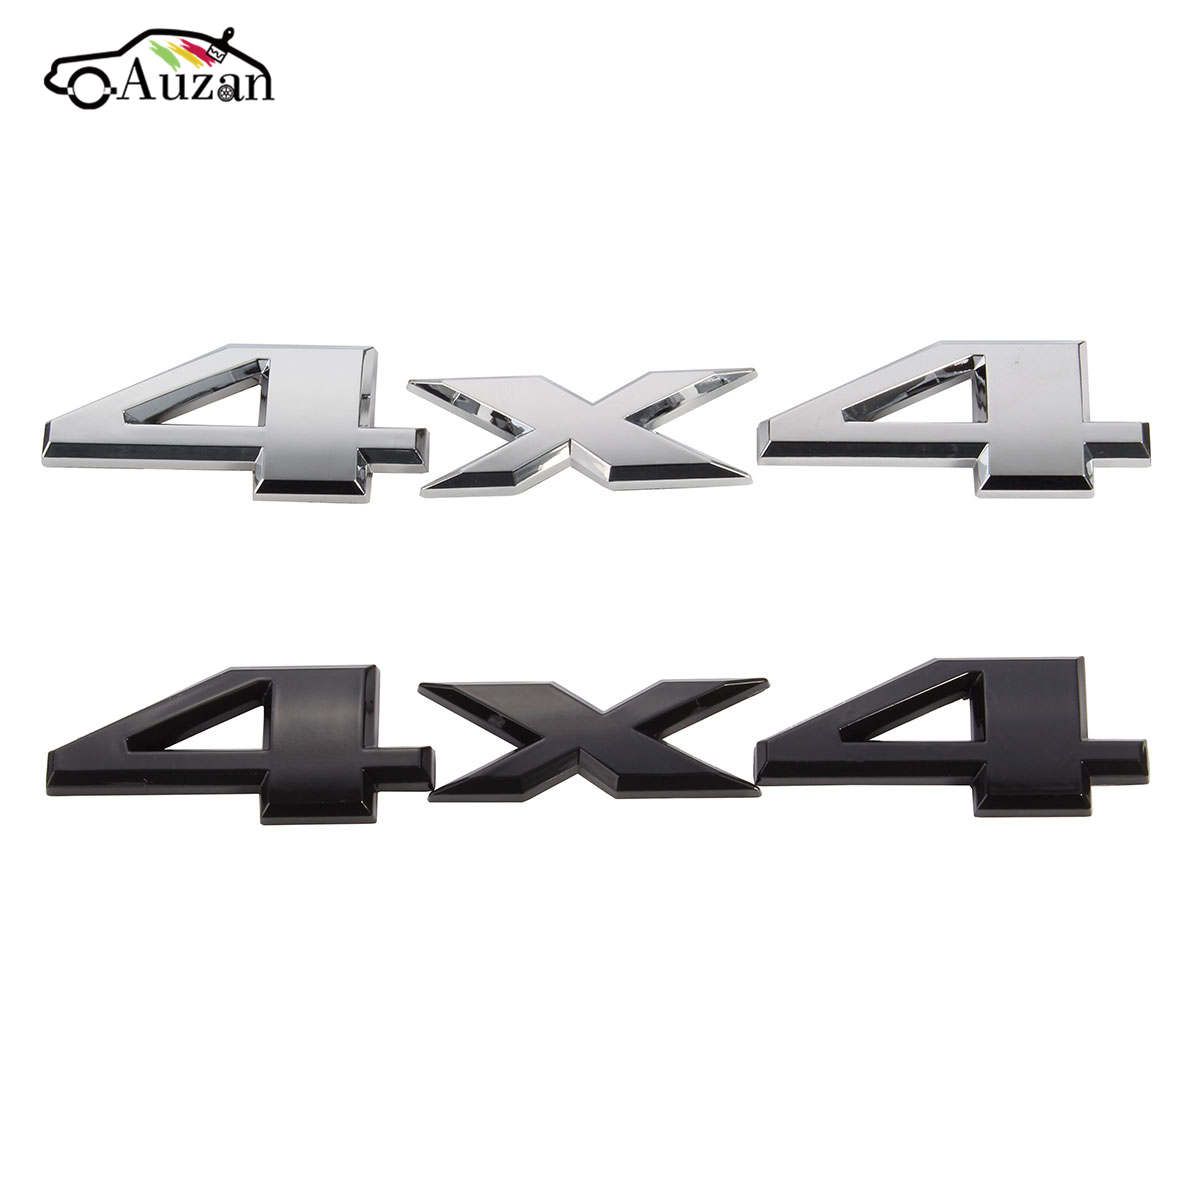 3D 4x4 Emblem Badge Car Sticker Logo Decal For Jeep /Grand /Cherokee Black Silver